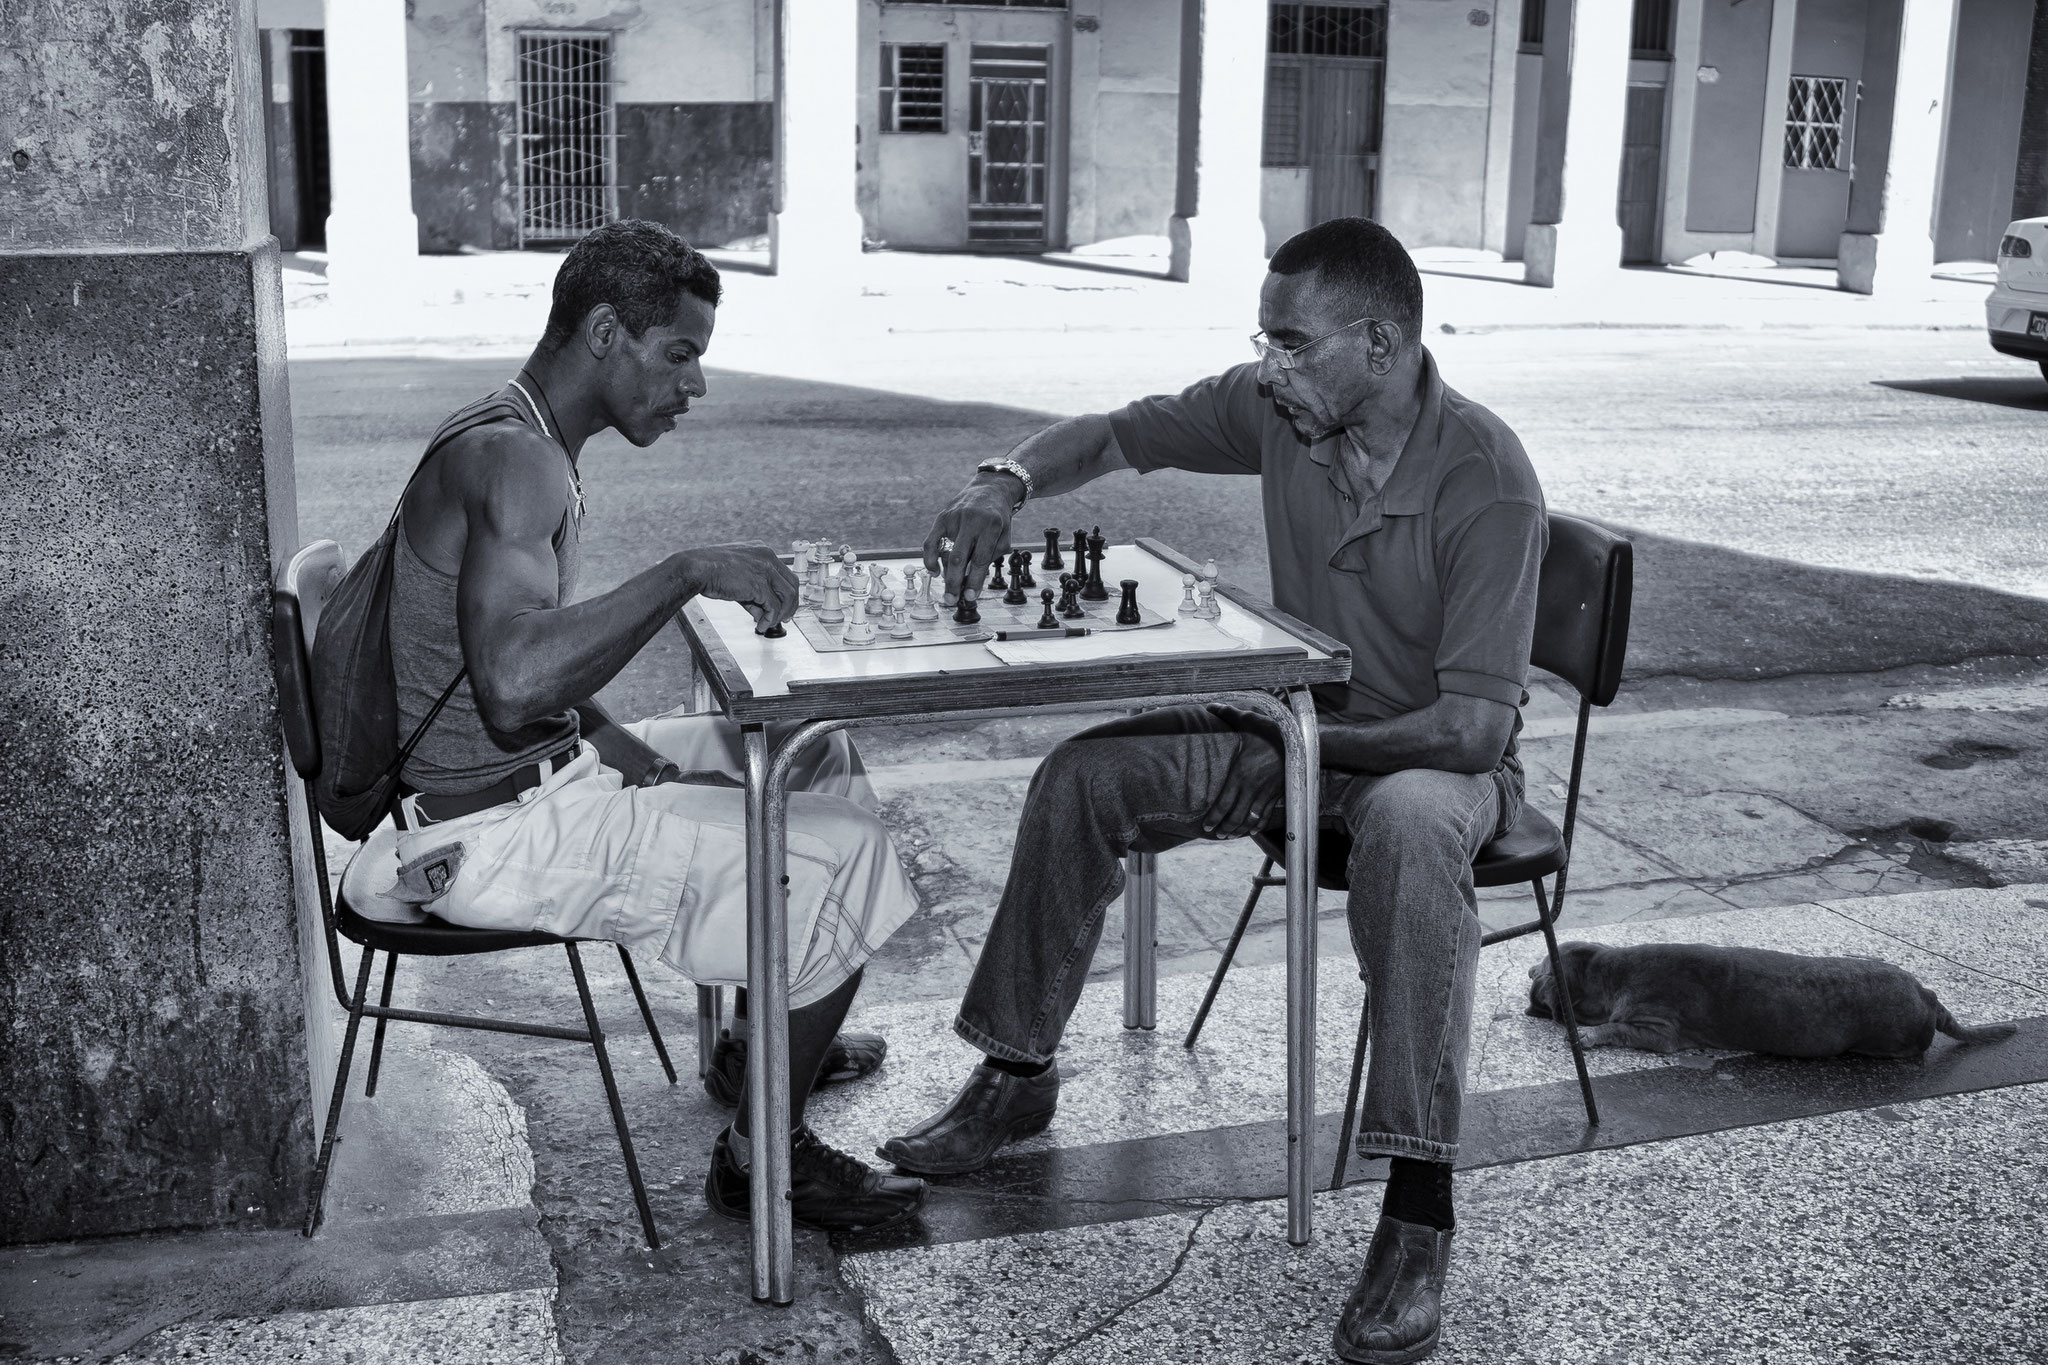 © Hans G. Lehmann | Chess players in Havana, Cuba